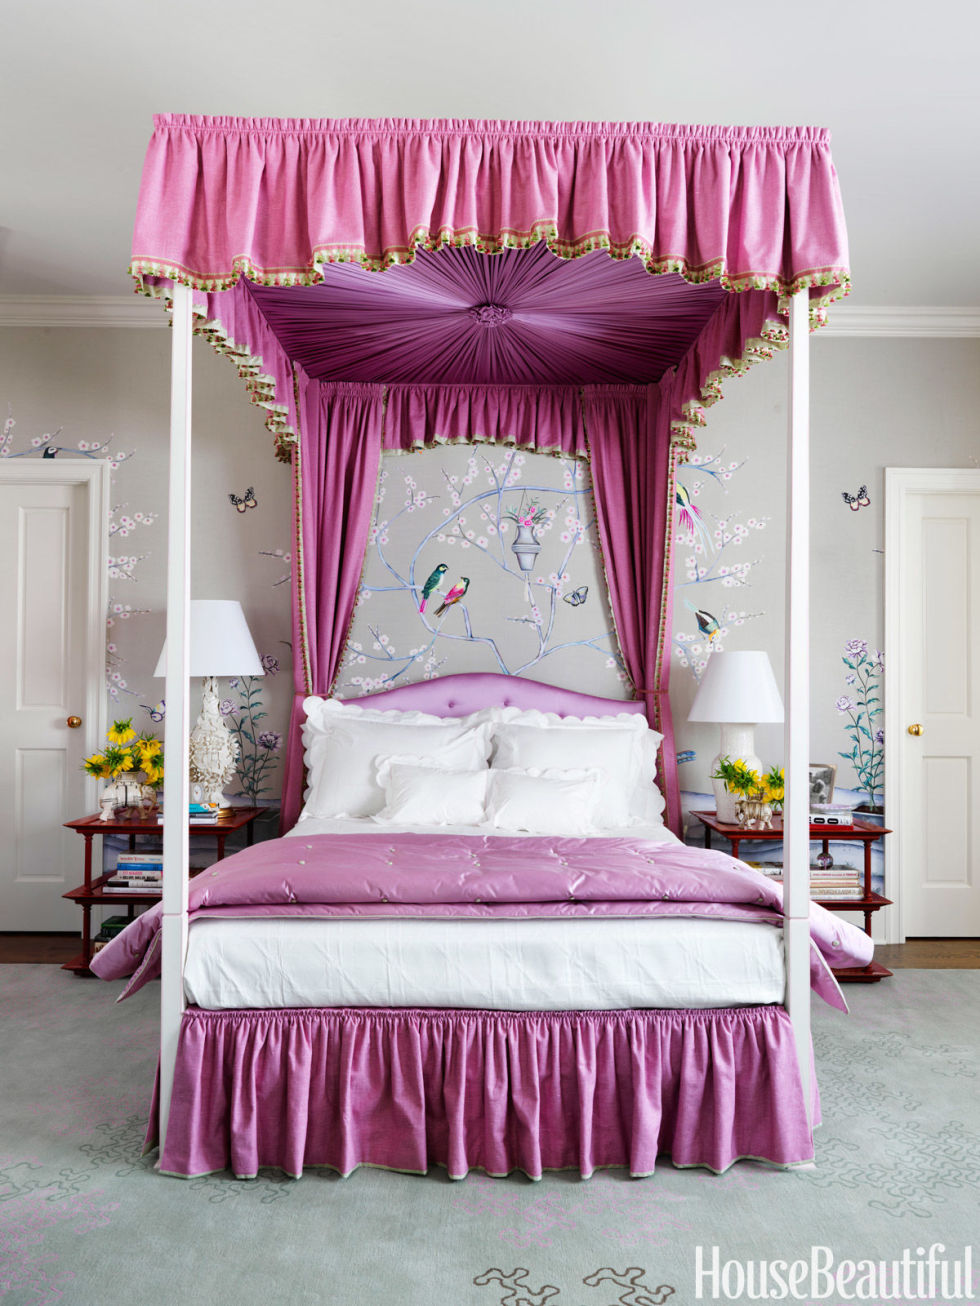 Pink Rooms Ideas For Pink Room Decor And Designs - Bedroom curtain design